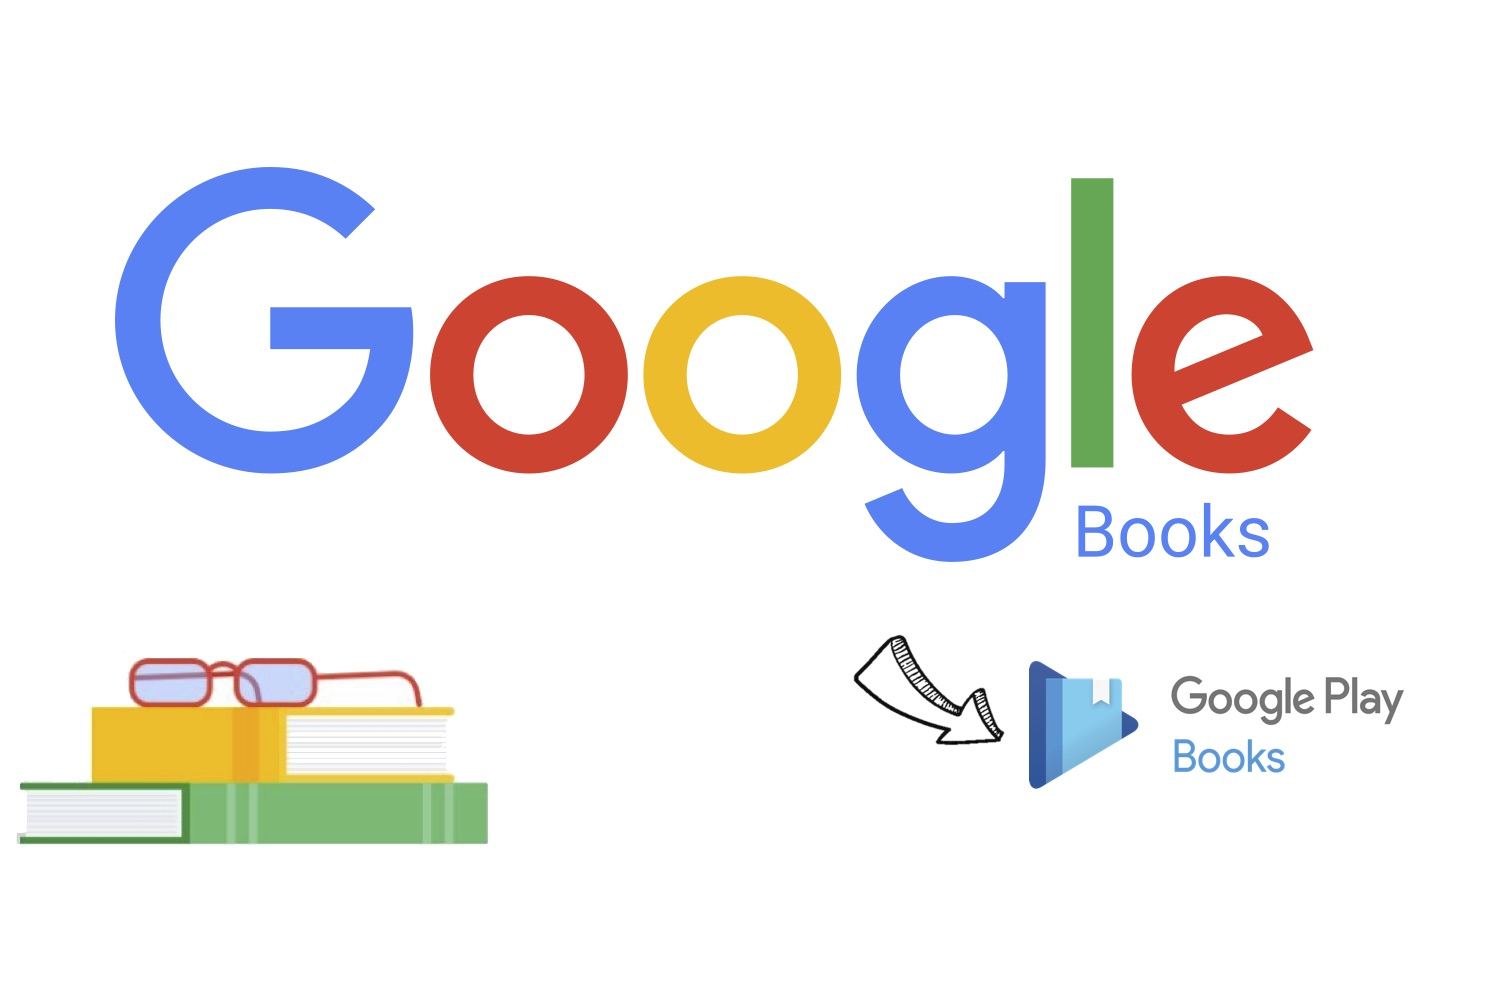 google libros, google play books